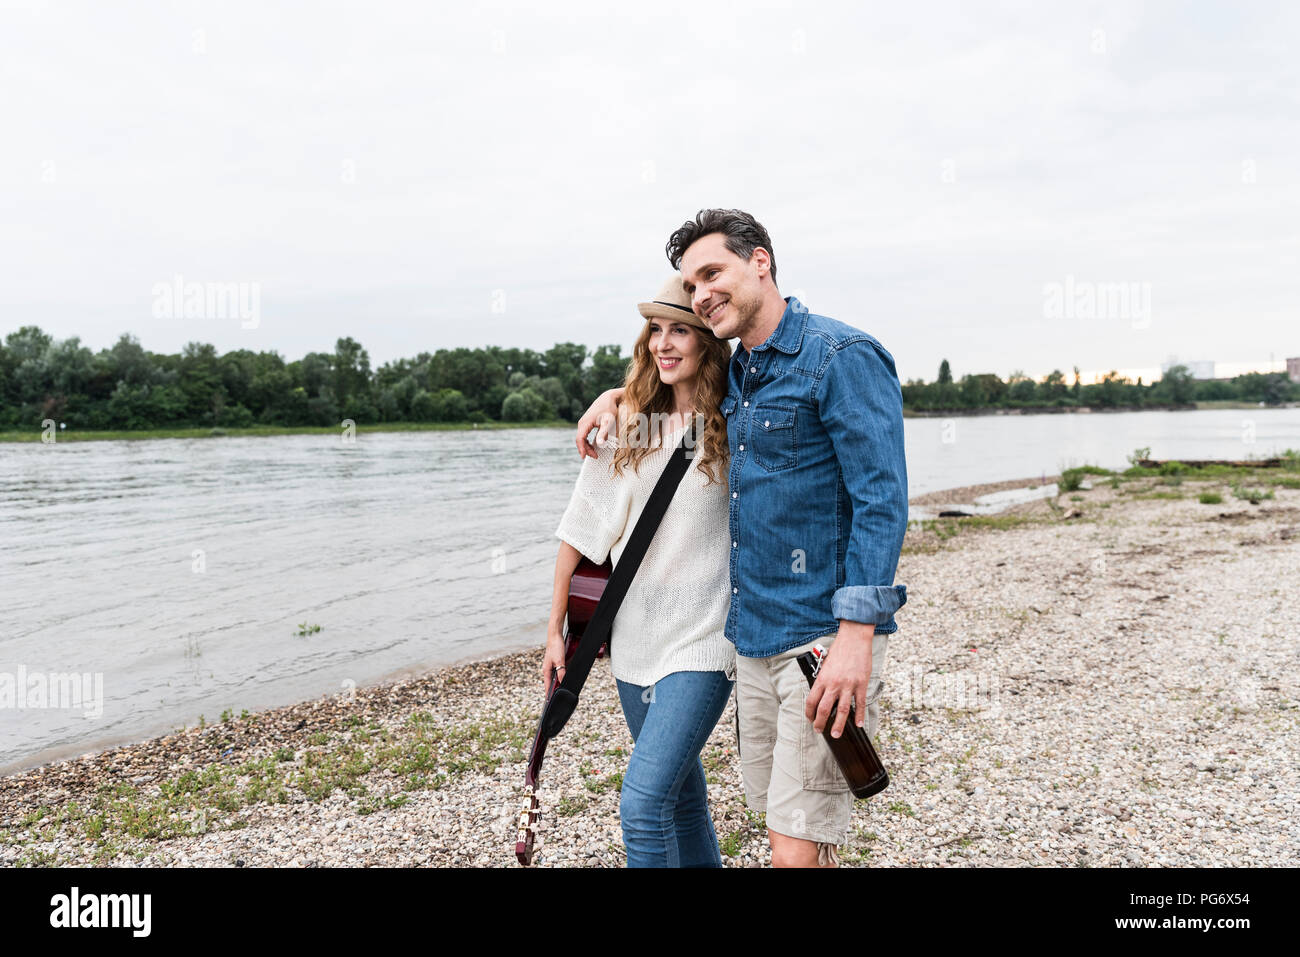 Happy couple walking at the riverside with beer bottle and guitar - Stock Image